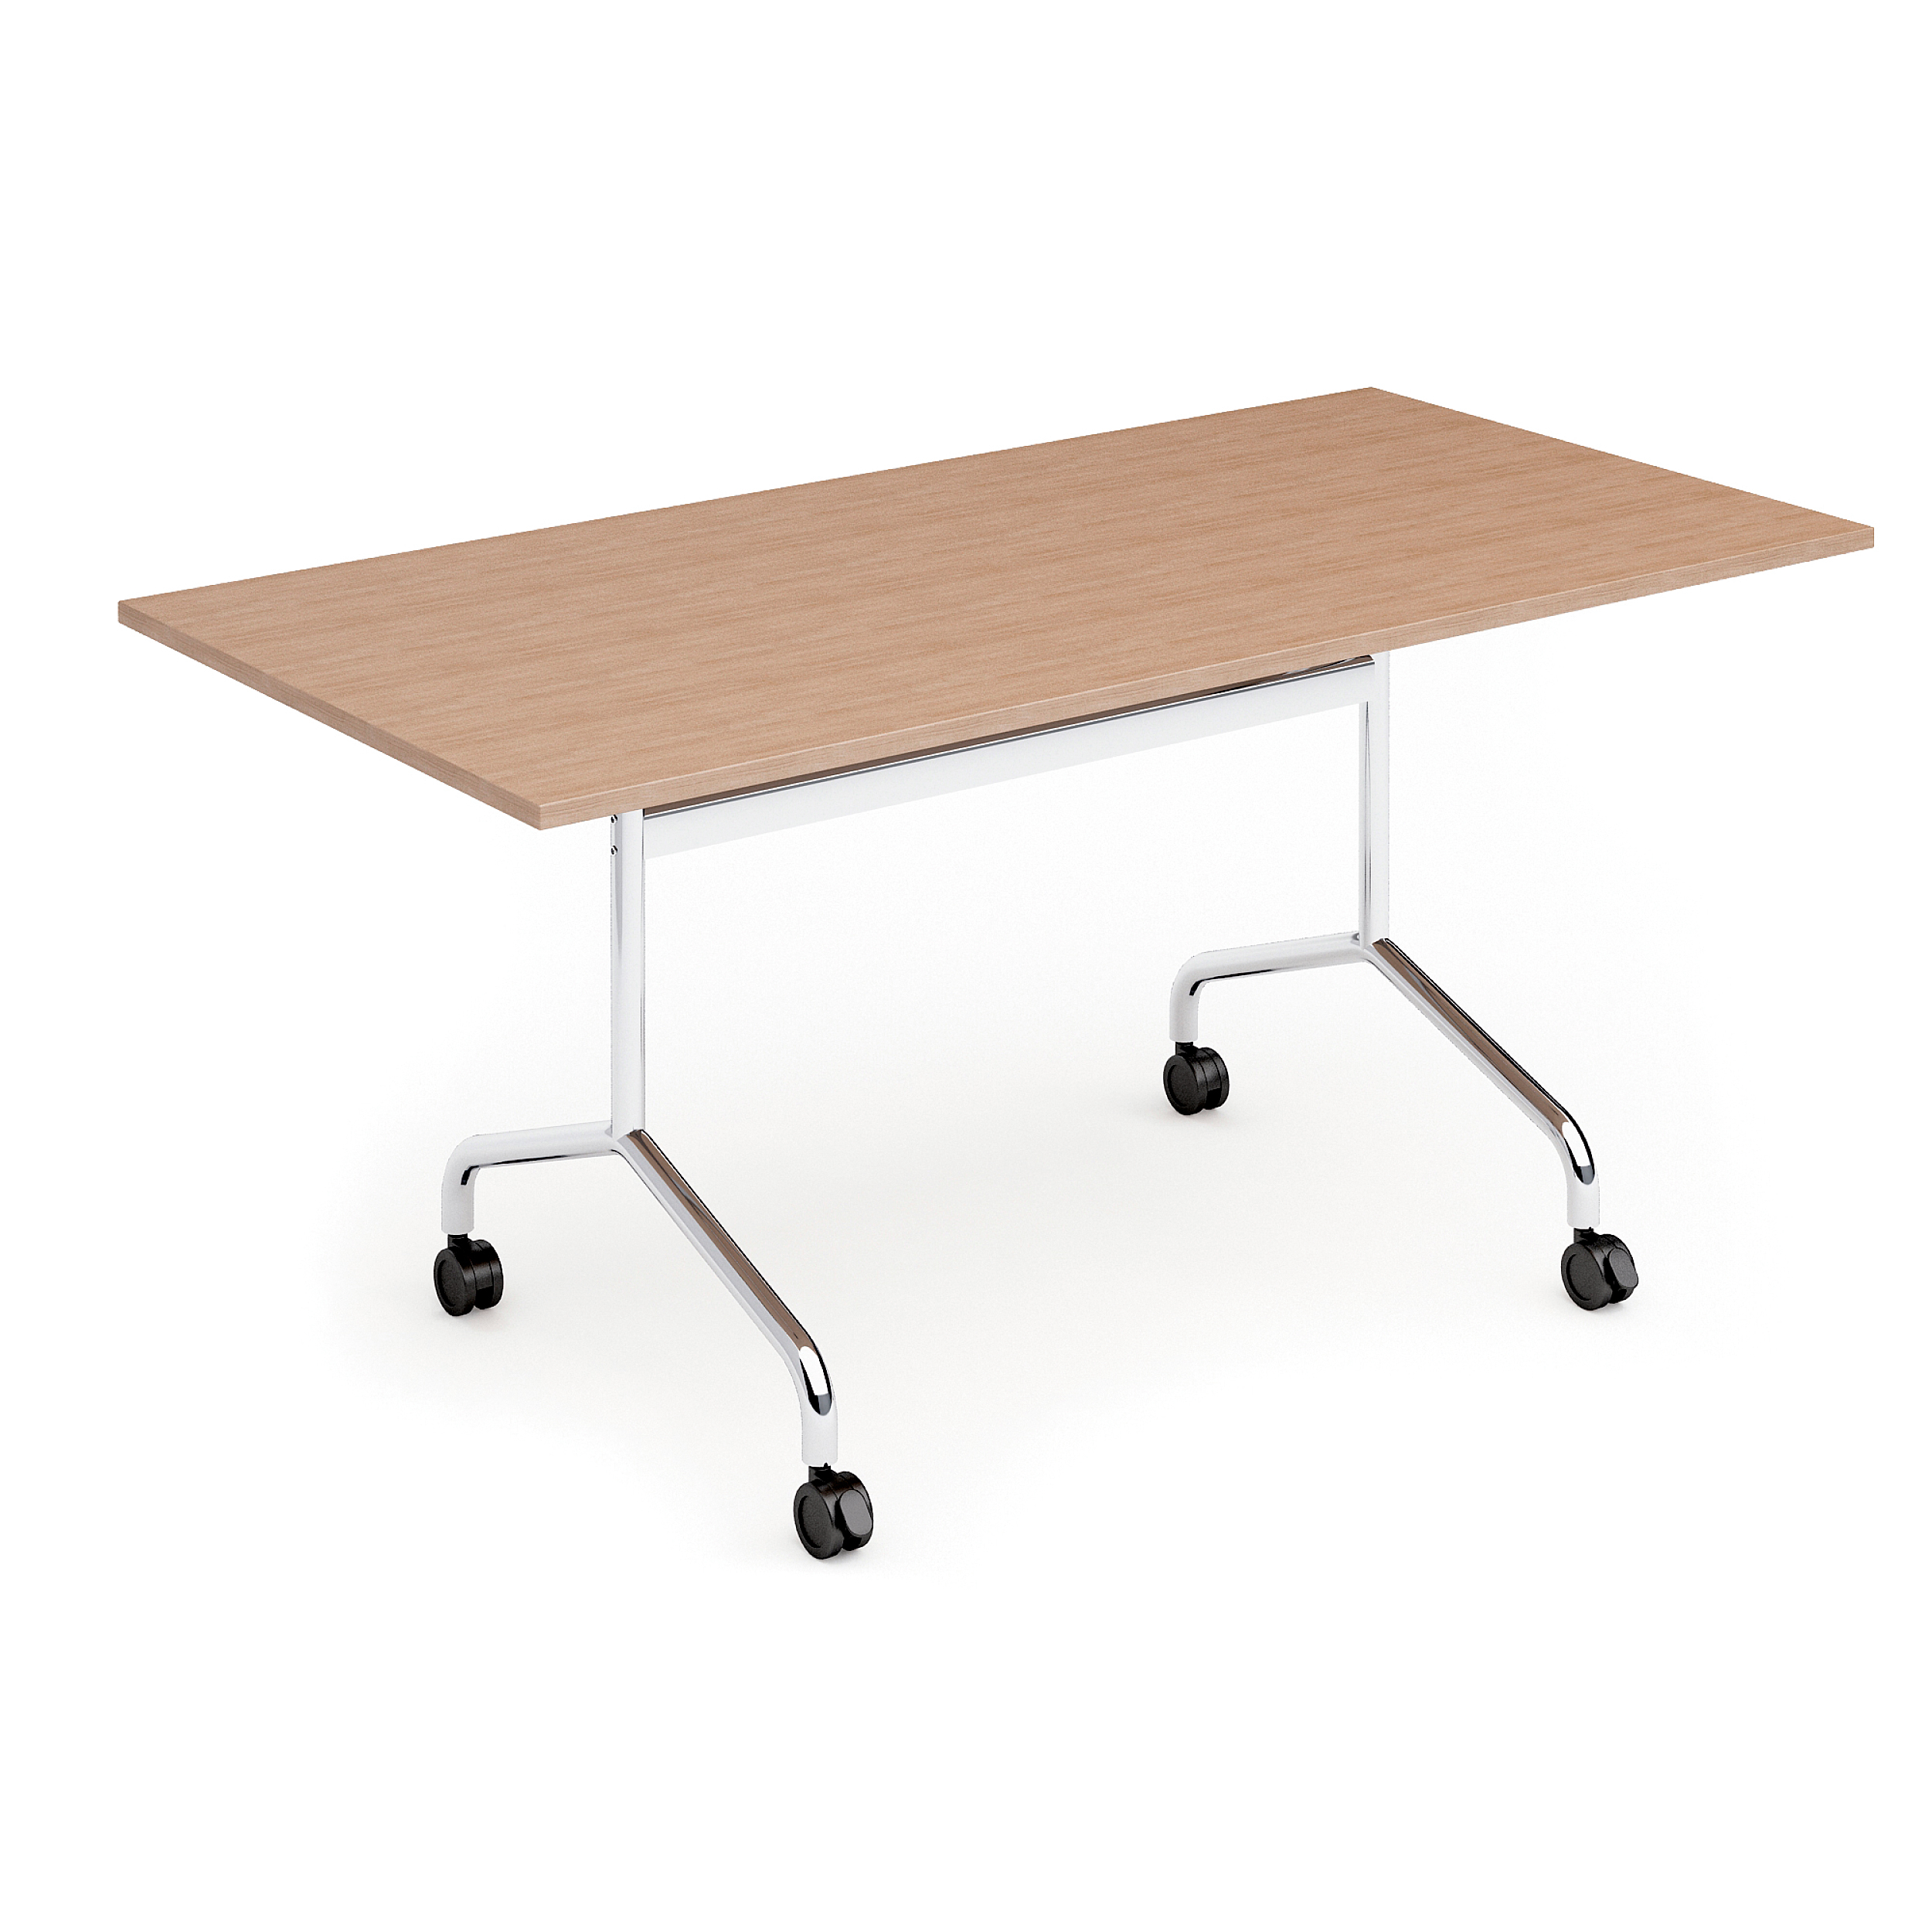 Table de réunion pliable Flib